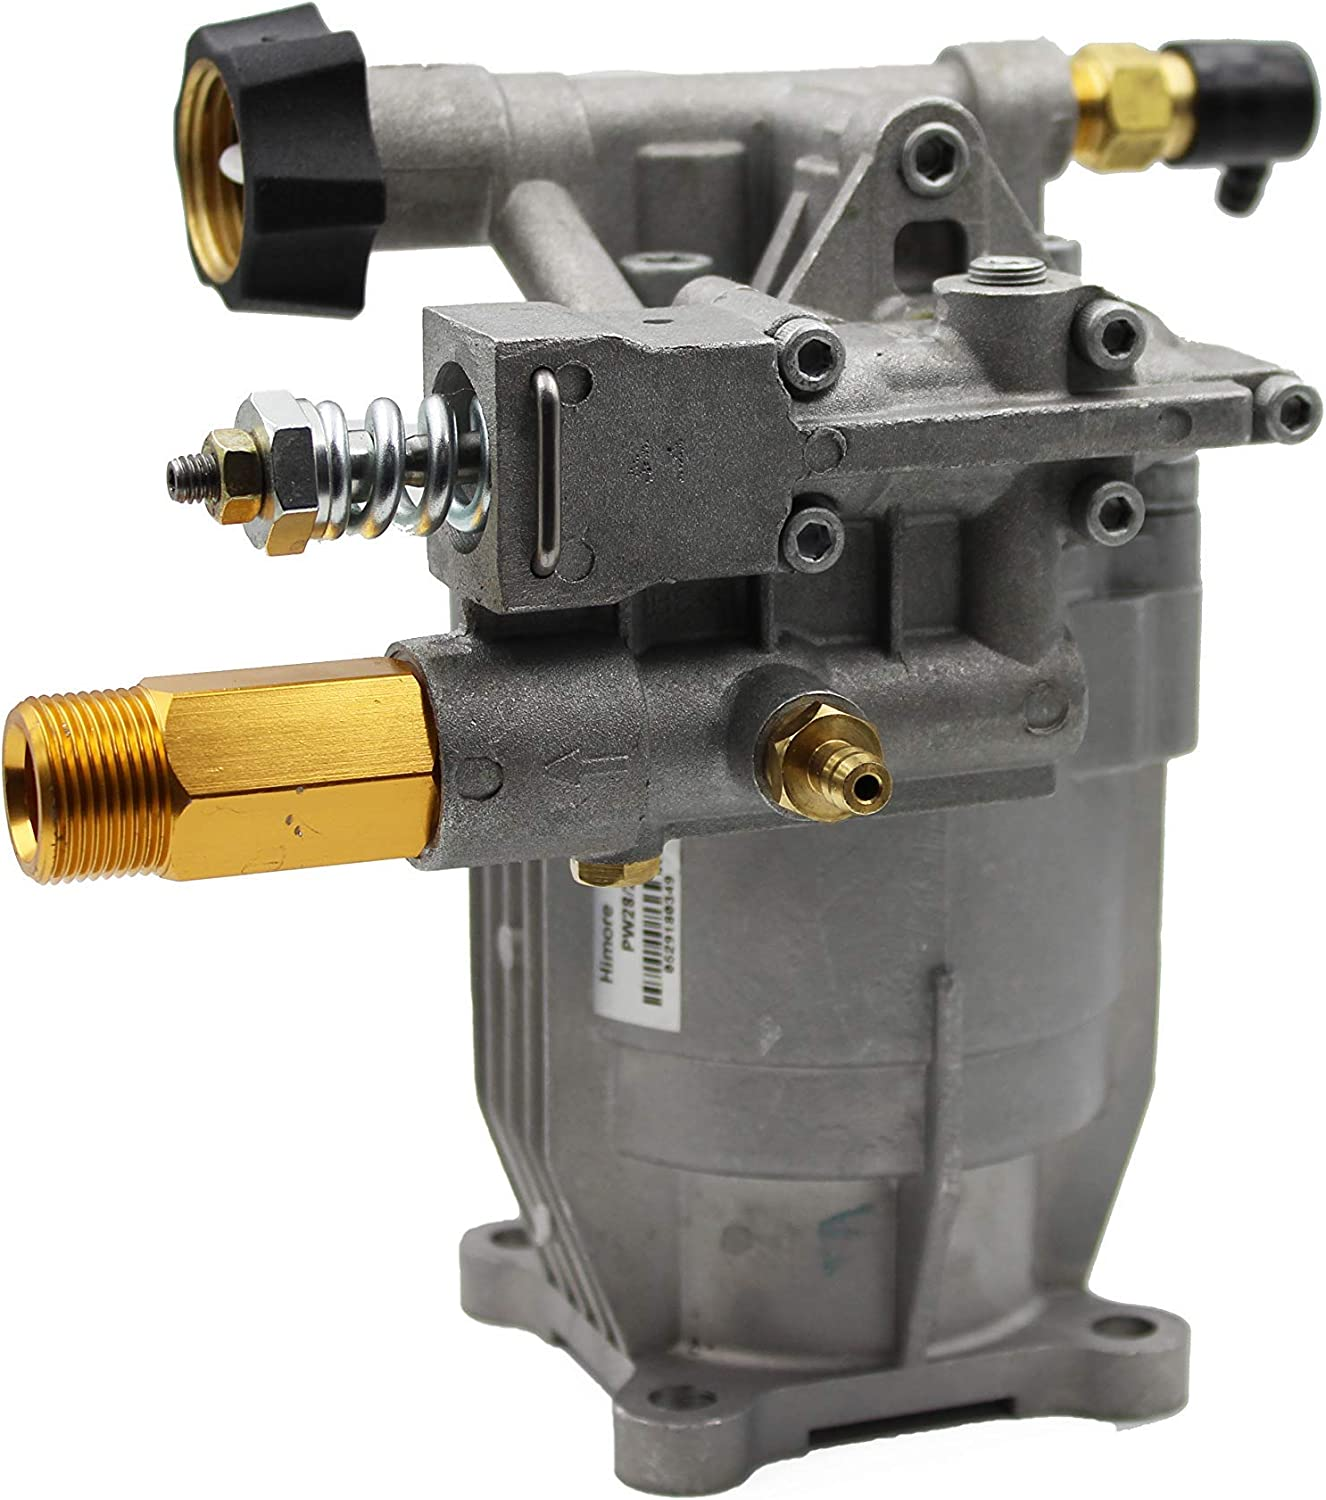 """PEGGAS Max 55% OFF Horizontal Pressure Washer Pump - OFFer 4"""" MAX 3 Shaft"""